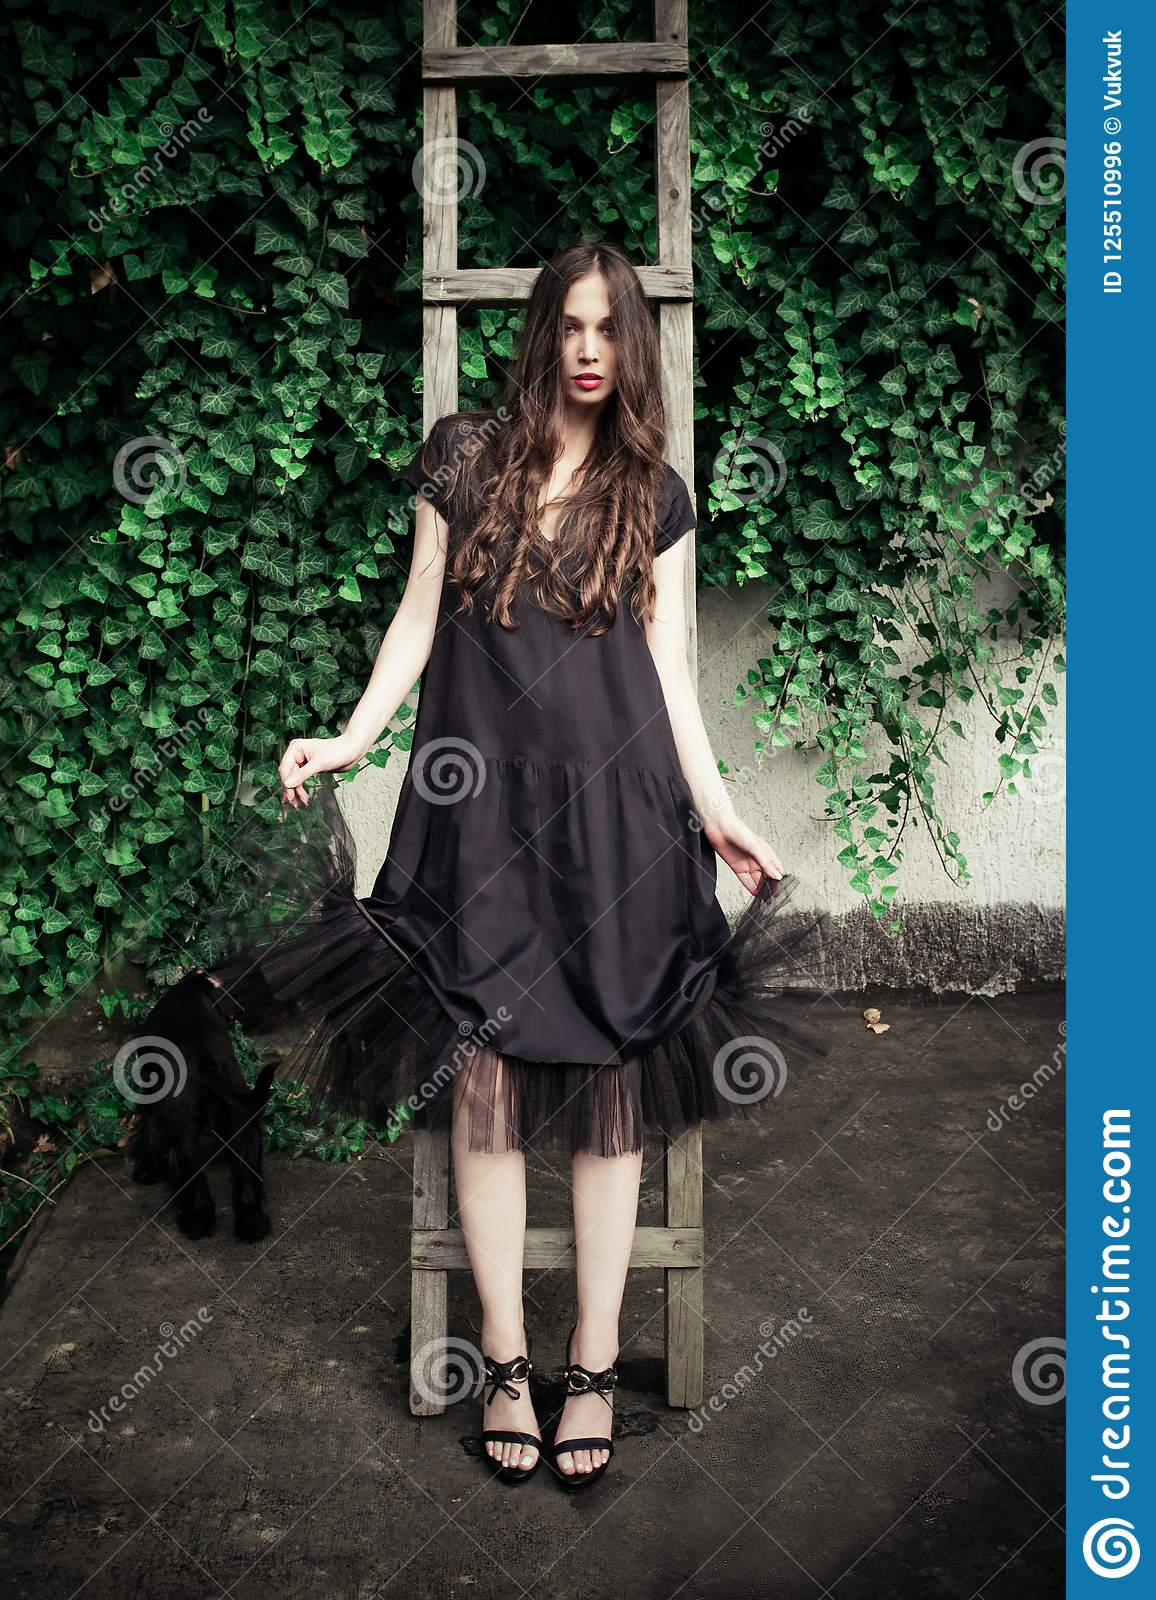 Young fashion woman in black elegant dress lean on wooden ladder